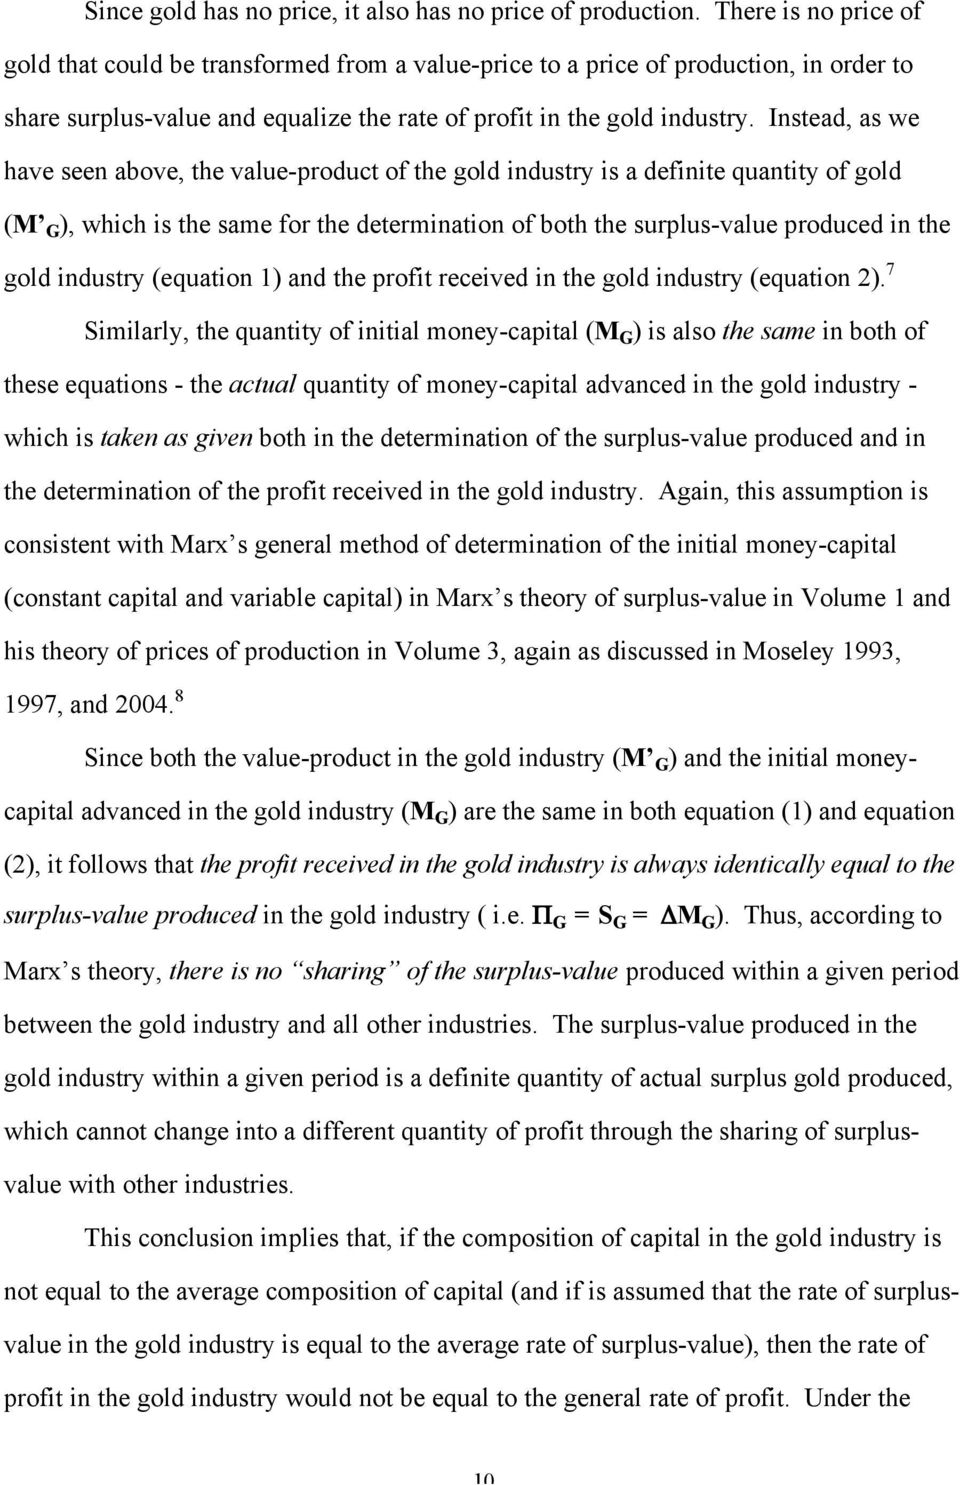 Instead, as we have seen above, the value-product of the gold industry is a definite quantity of gold (M G ), which is the same for the determination of both the surplus-value produced in the gold